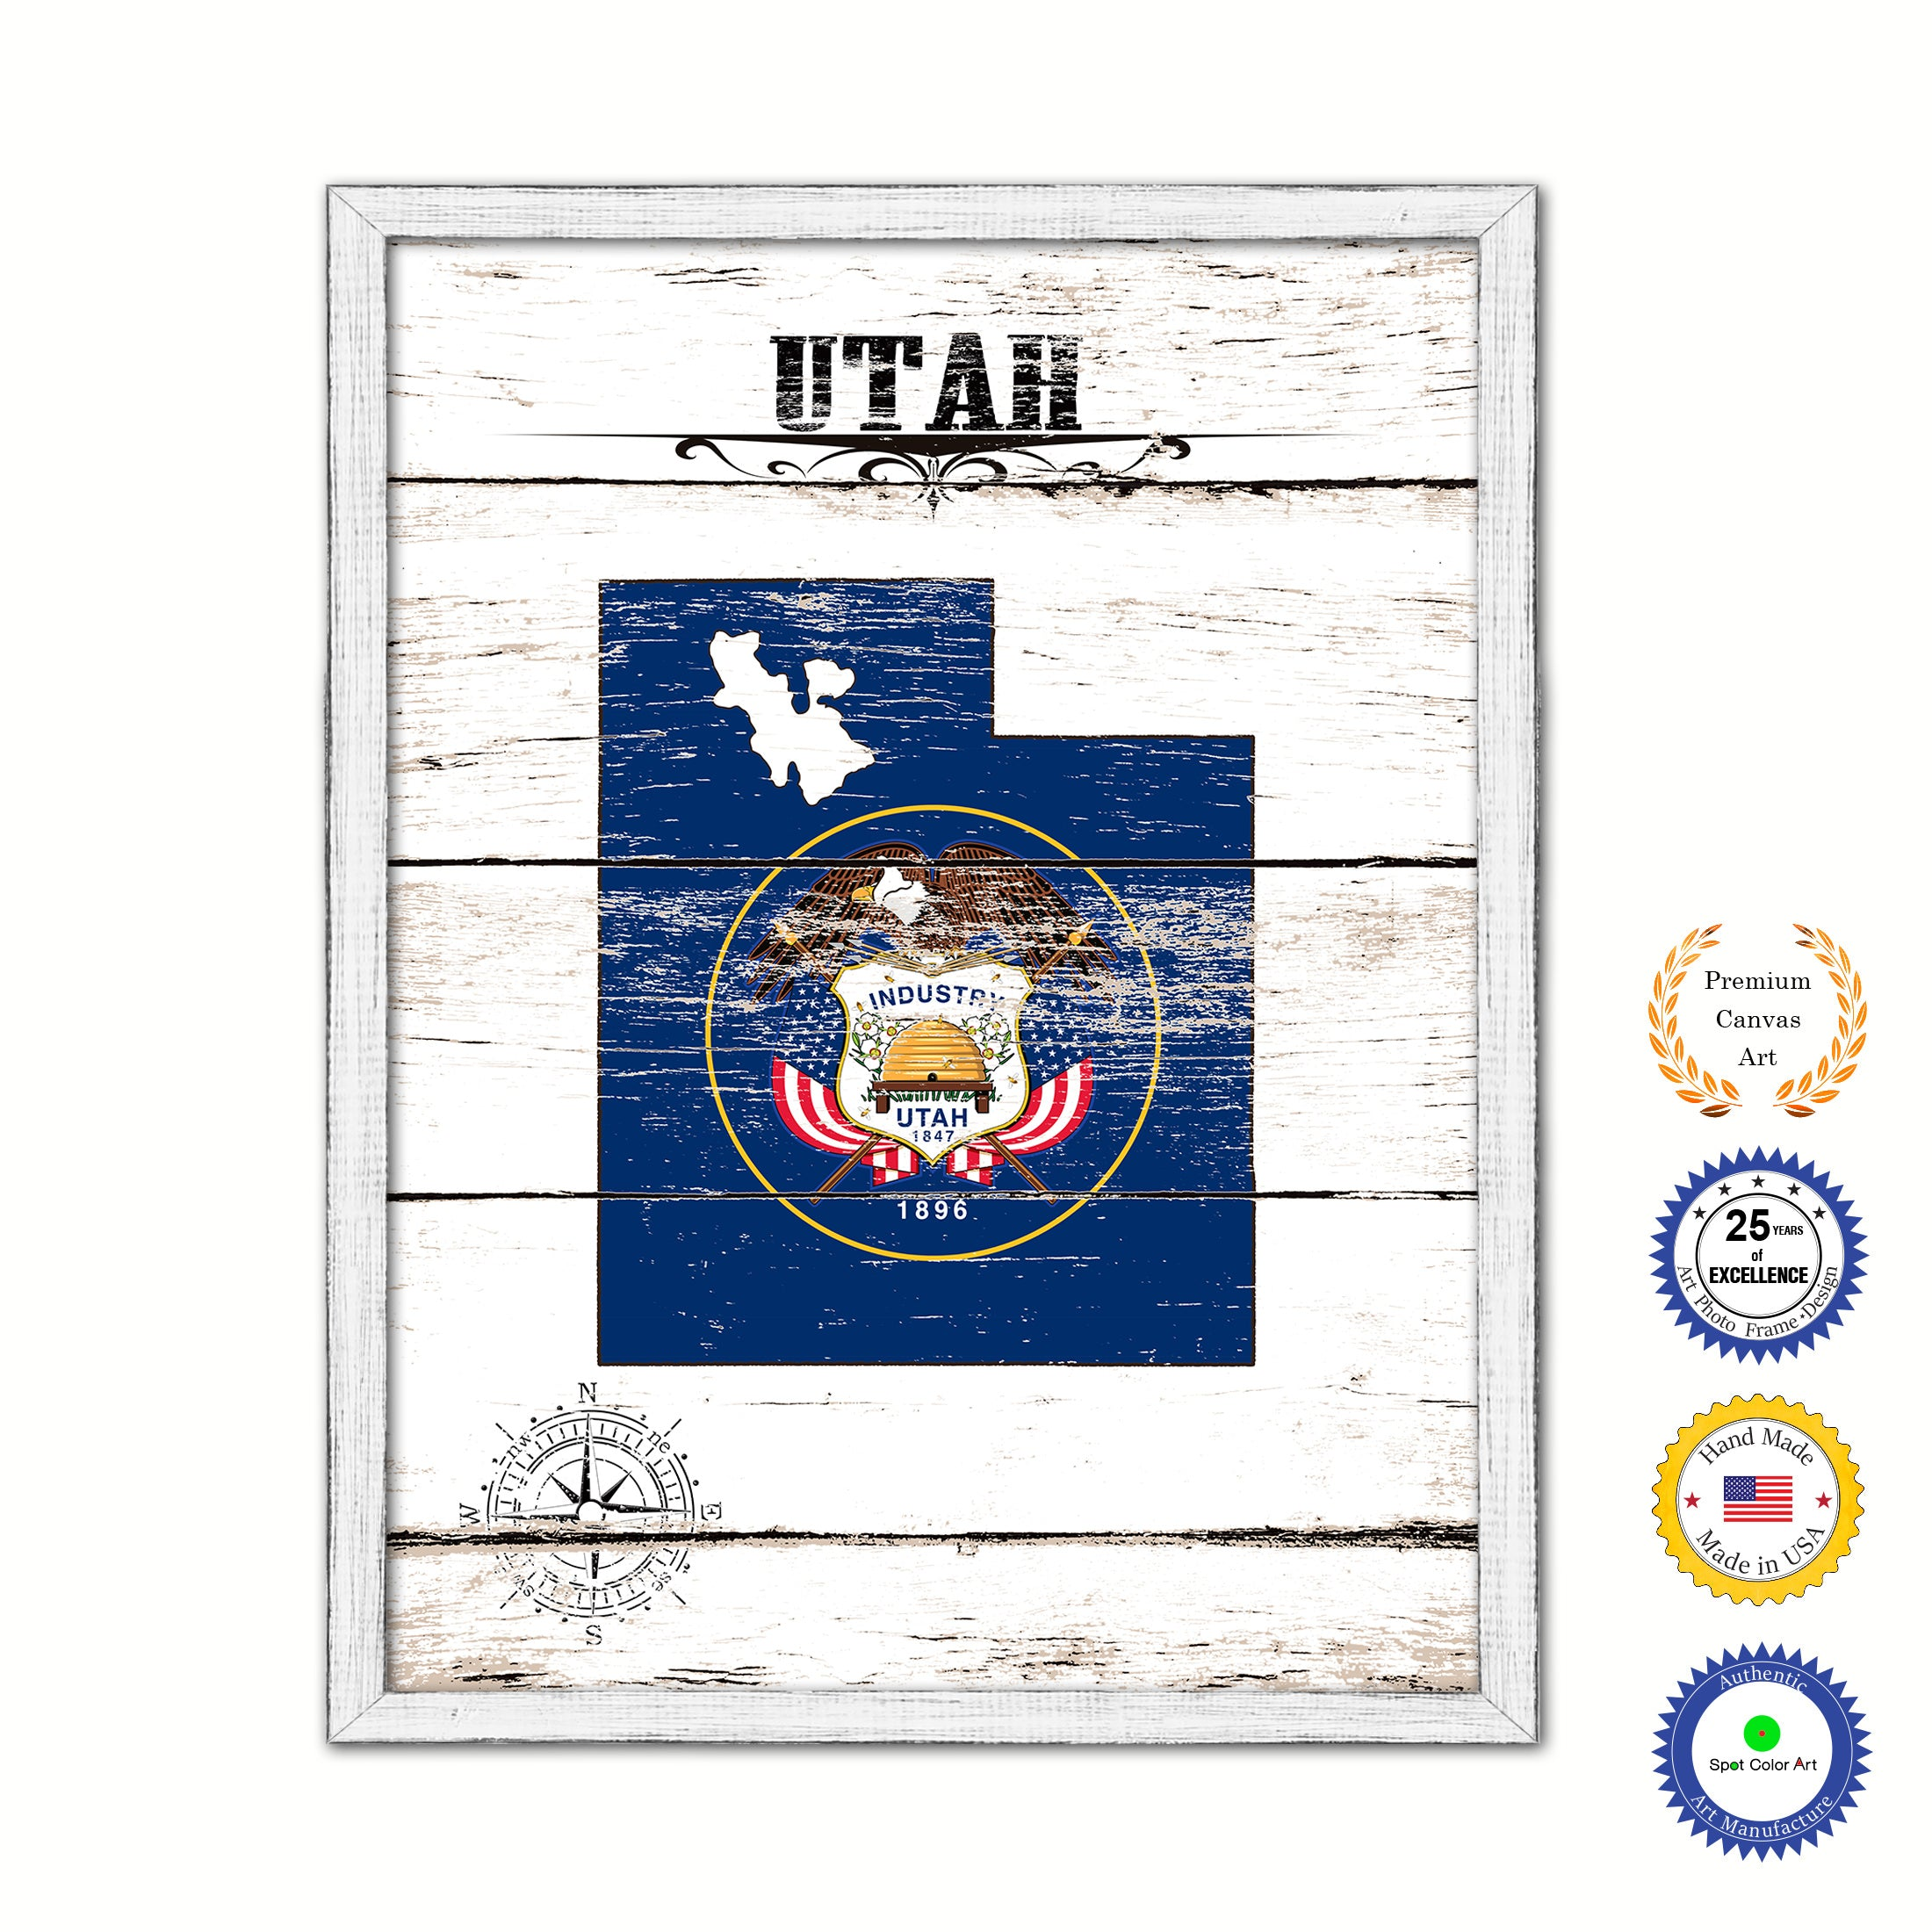 Utah State Shabby Chic Flag Home Decor Office Wall Art Collection Bedroom Livingroom Decoration Gift Ideas SpotColorArt